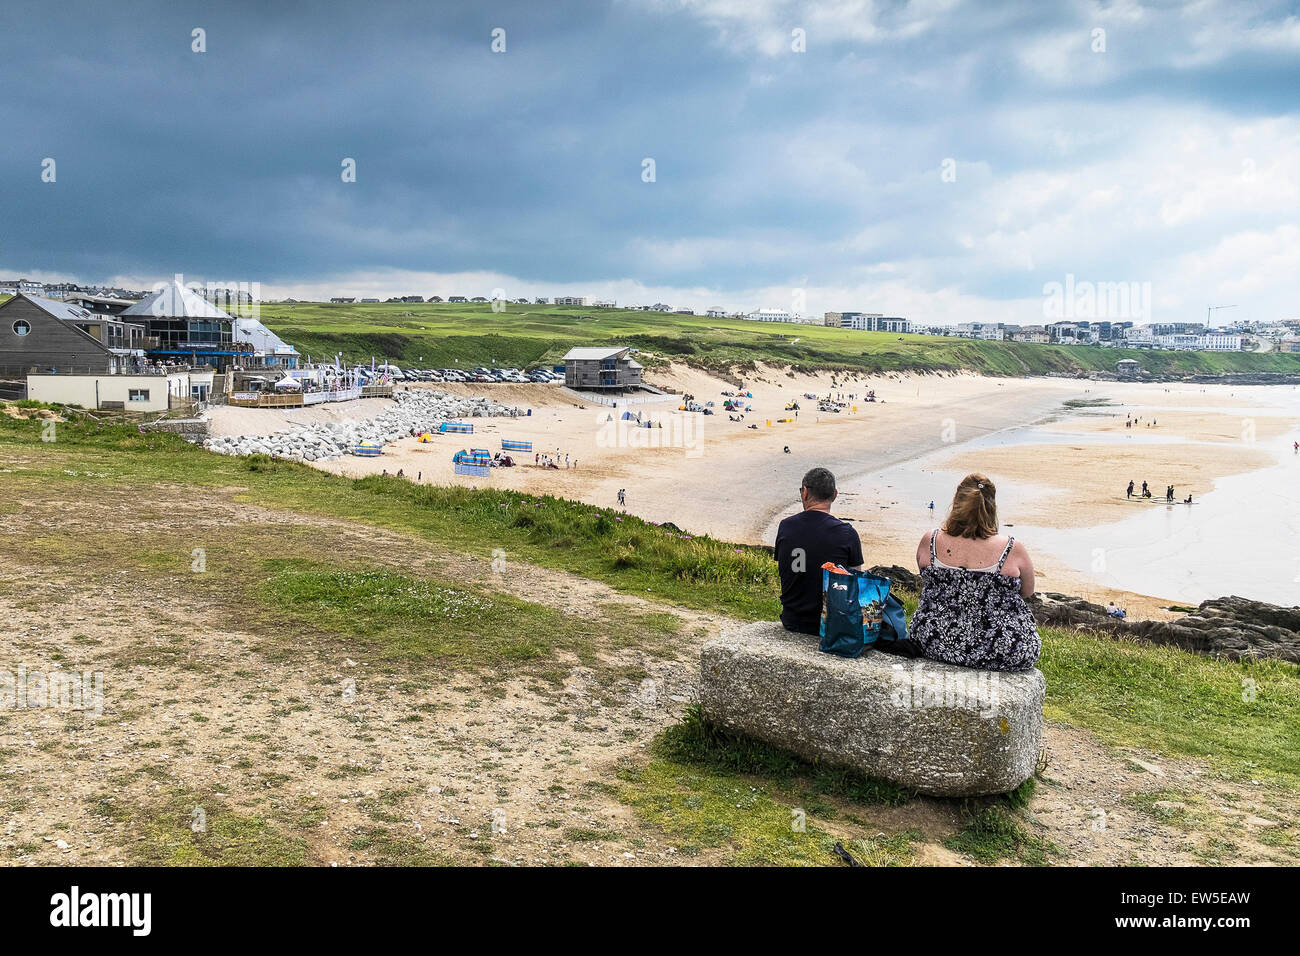 Holidaymakers looking over Fistral Beach in Newquay, Cornwall. - Stock Image